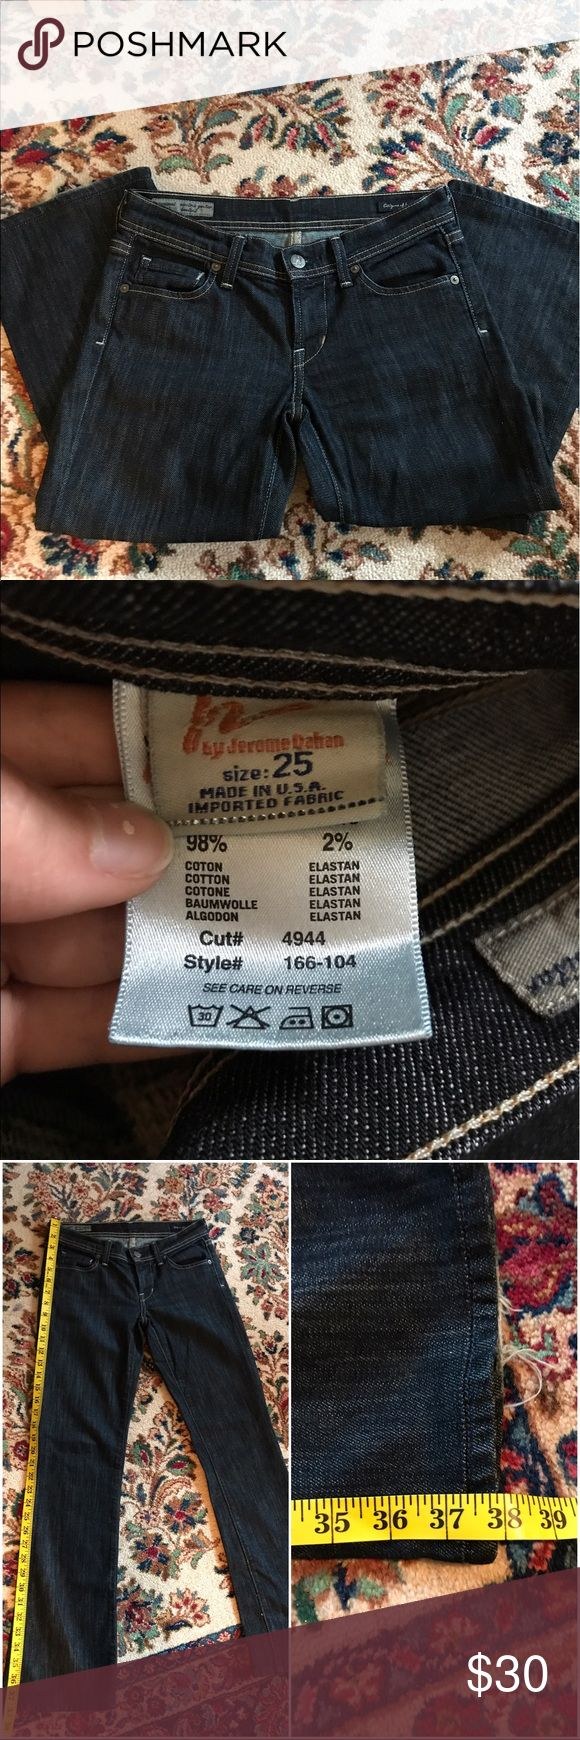 Citizens of Humanity Jeans Excellent condition Citizens of Humanity by Jerome Dahan jeans. 3rd picture shows the complete length, 4th picture shows the inseam length. They are a size 25 tagged. A small loose thread/tear on left bottom. More measurements will be taken upon request. Made in USA. I have MANY jeans that are altered to fit a petite lady so please bundle and make offers. Any questions, leave a comment. Offers welcome :) retail for $298 Citizens of Humanity Jeans